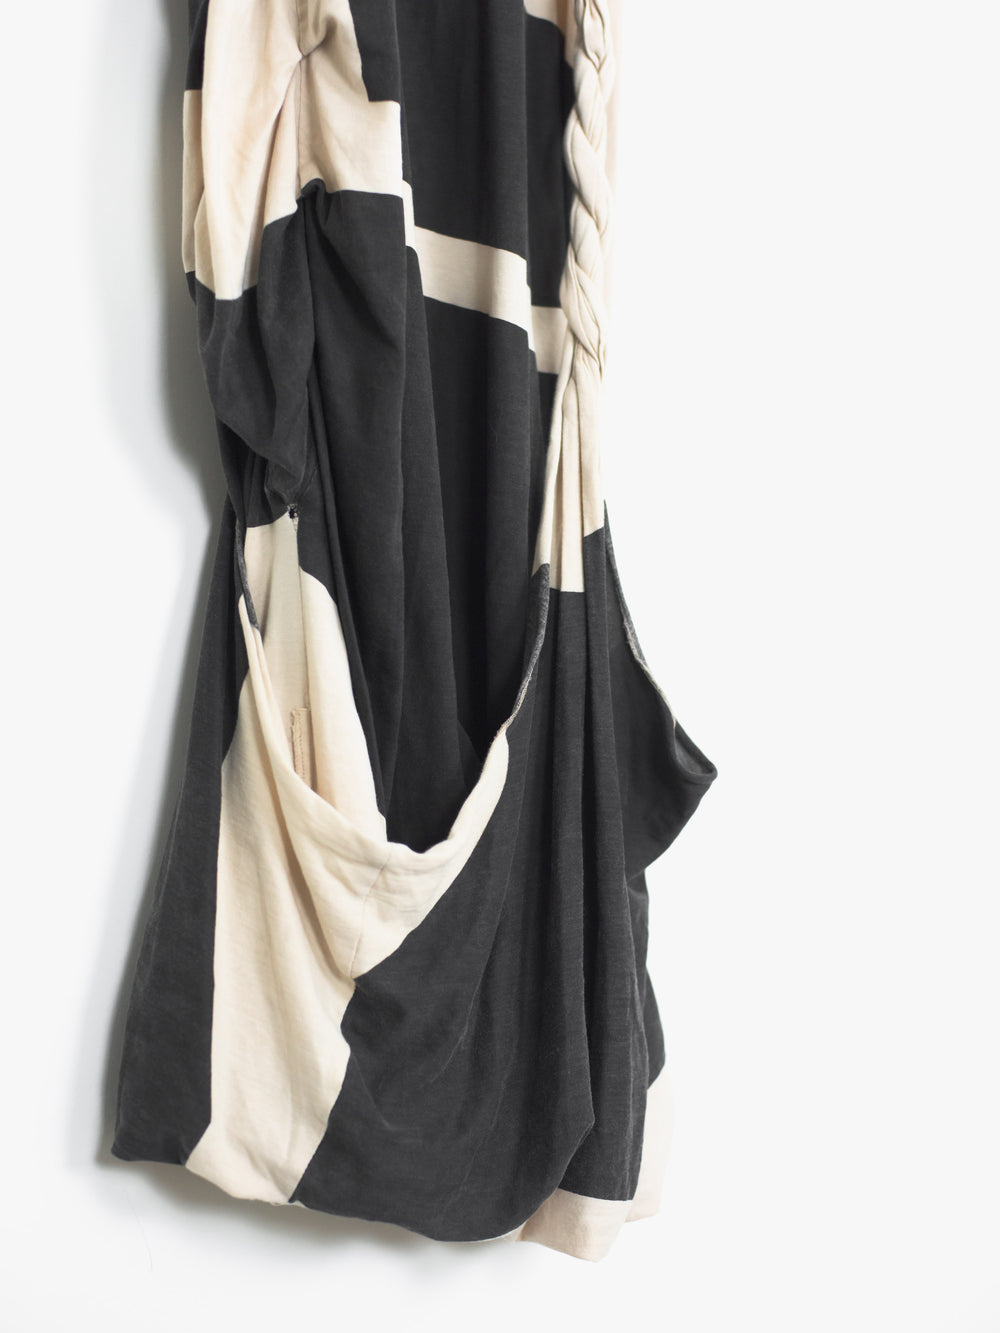 Helmut Lang SS05 Asymmetric Twisted Dress